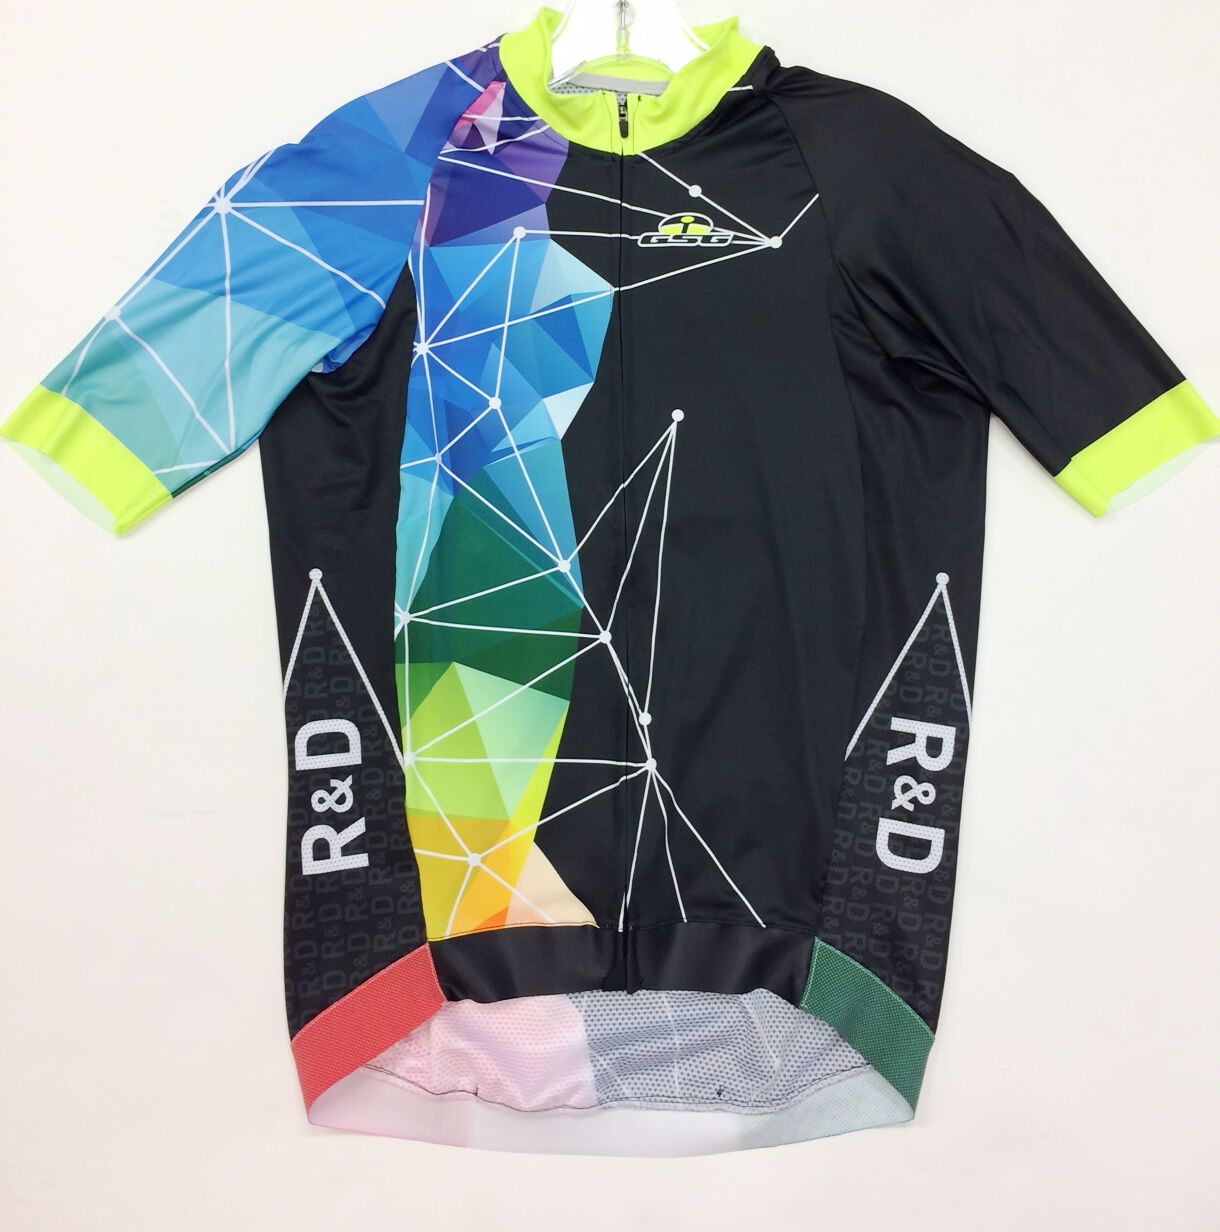 Spider JERSEY Web Professional CYCLING SHORT SLEEVE JERSEY Spider Made in  by GSG 9a7351